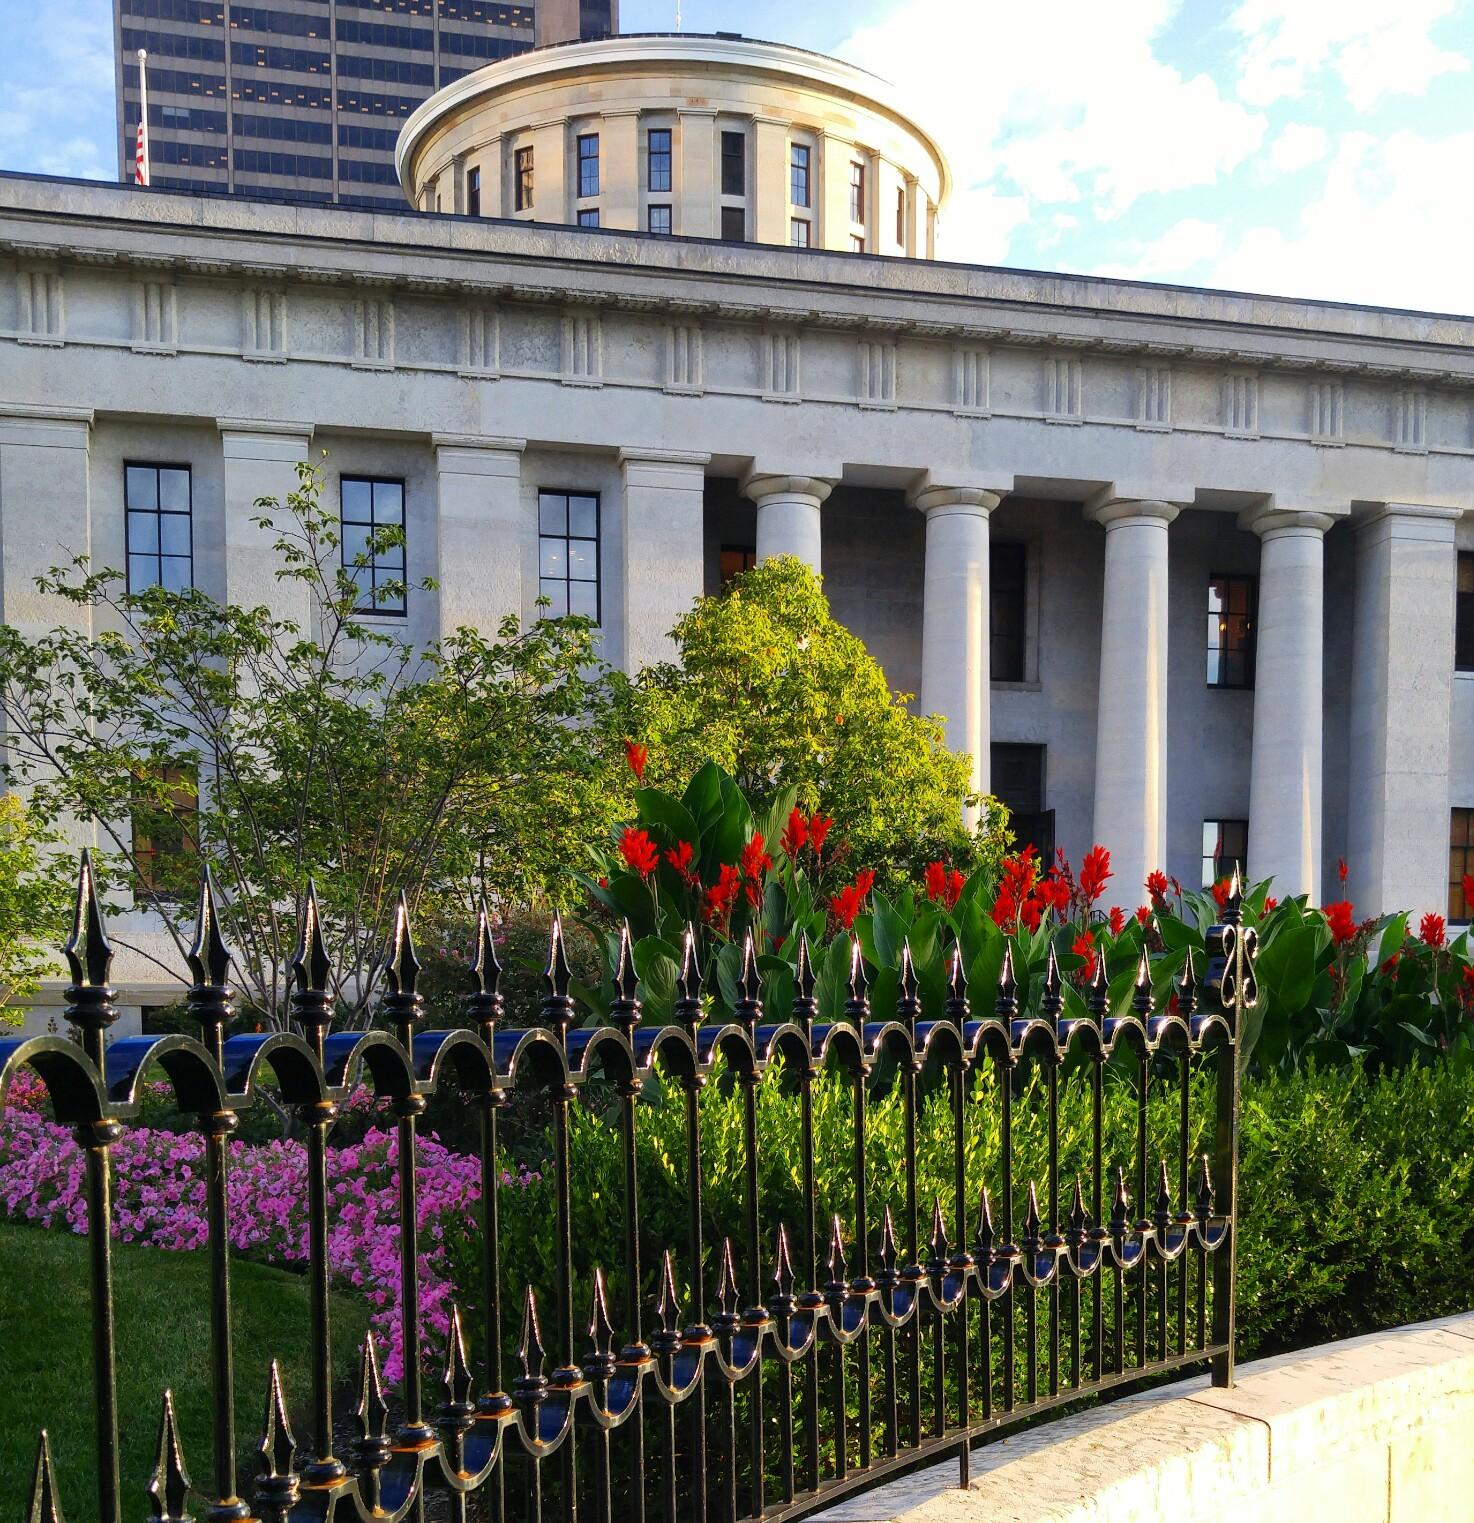 File:Ohio Statehouse.jpg